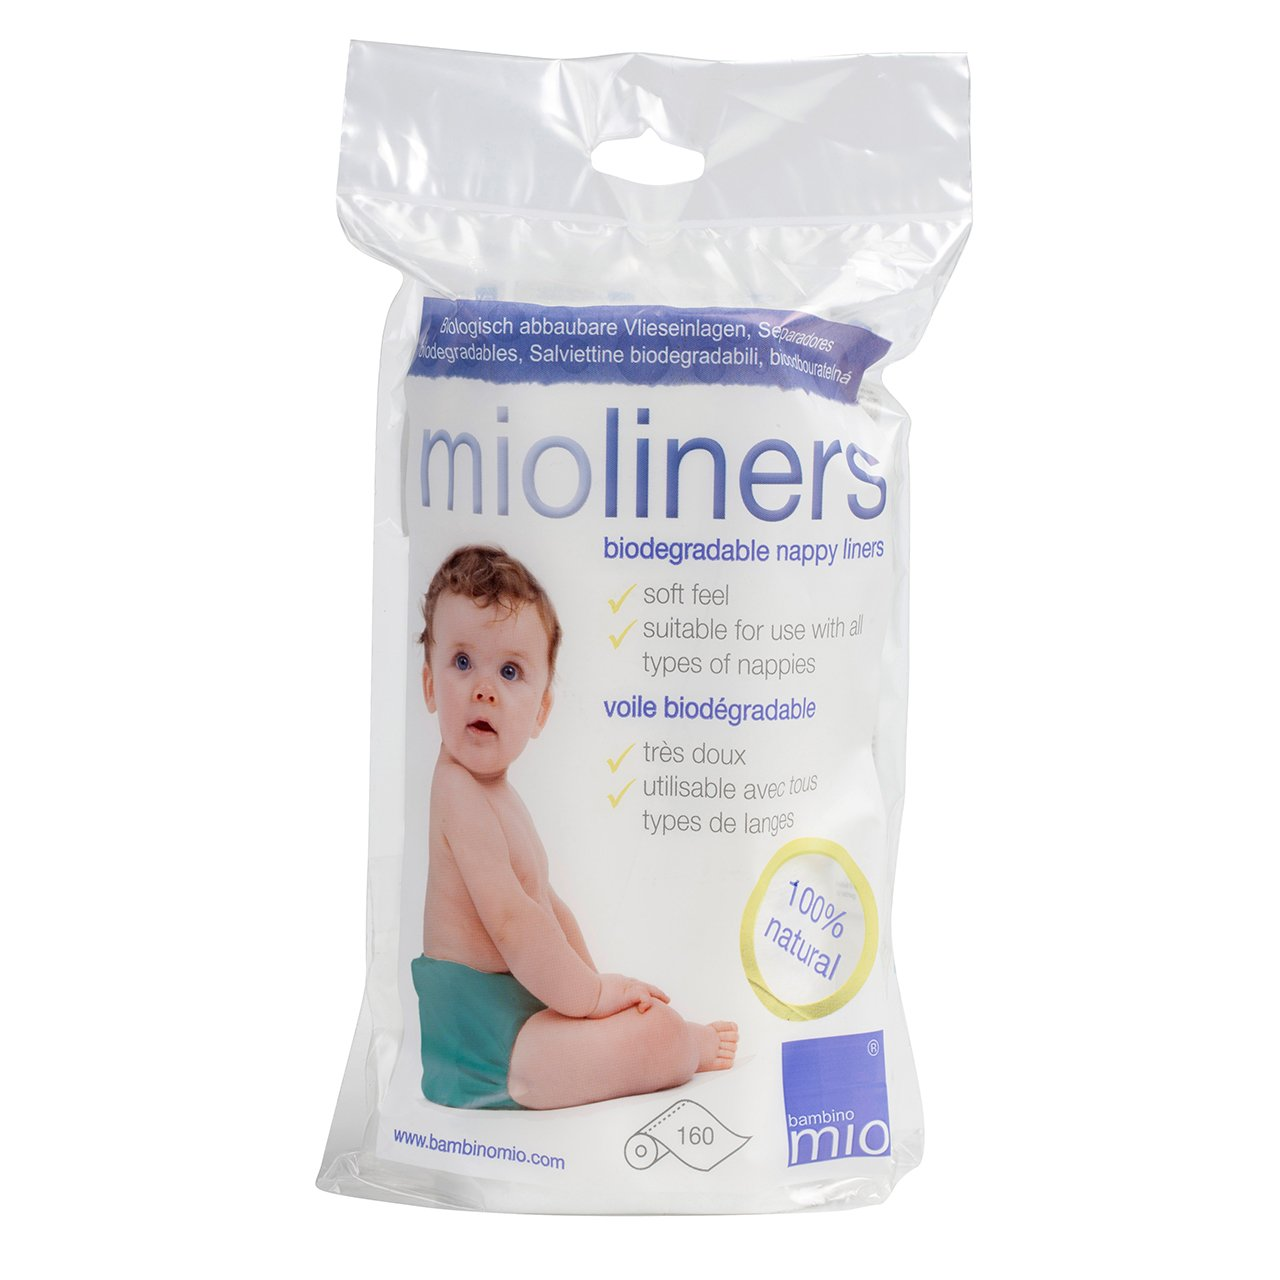 Bambino Mio, Mioliners (Diaper Liners), 2 Pack BL2